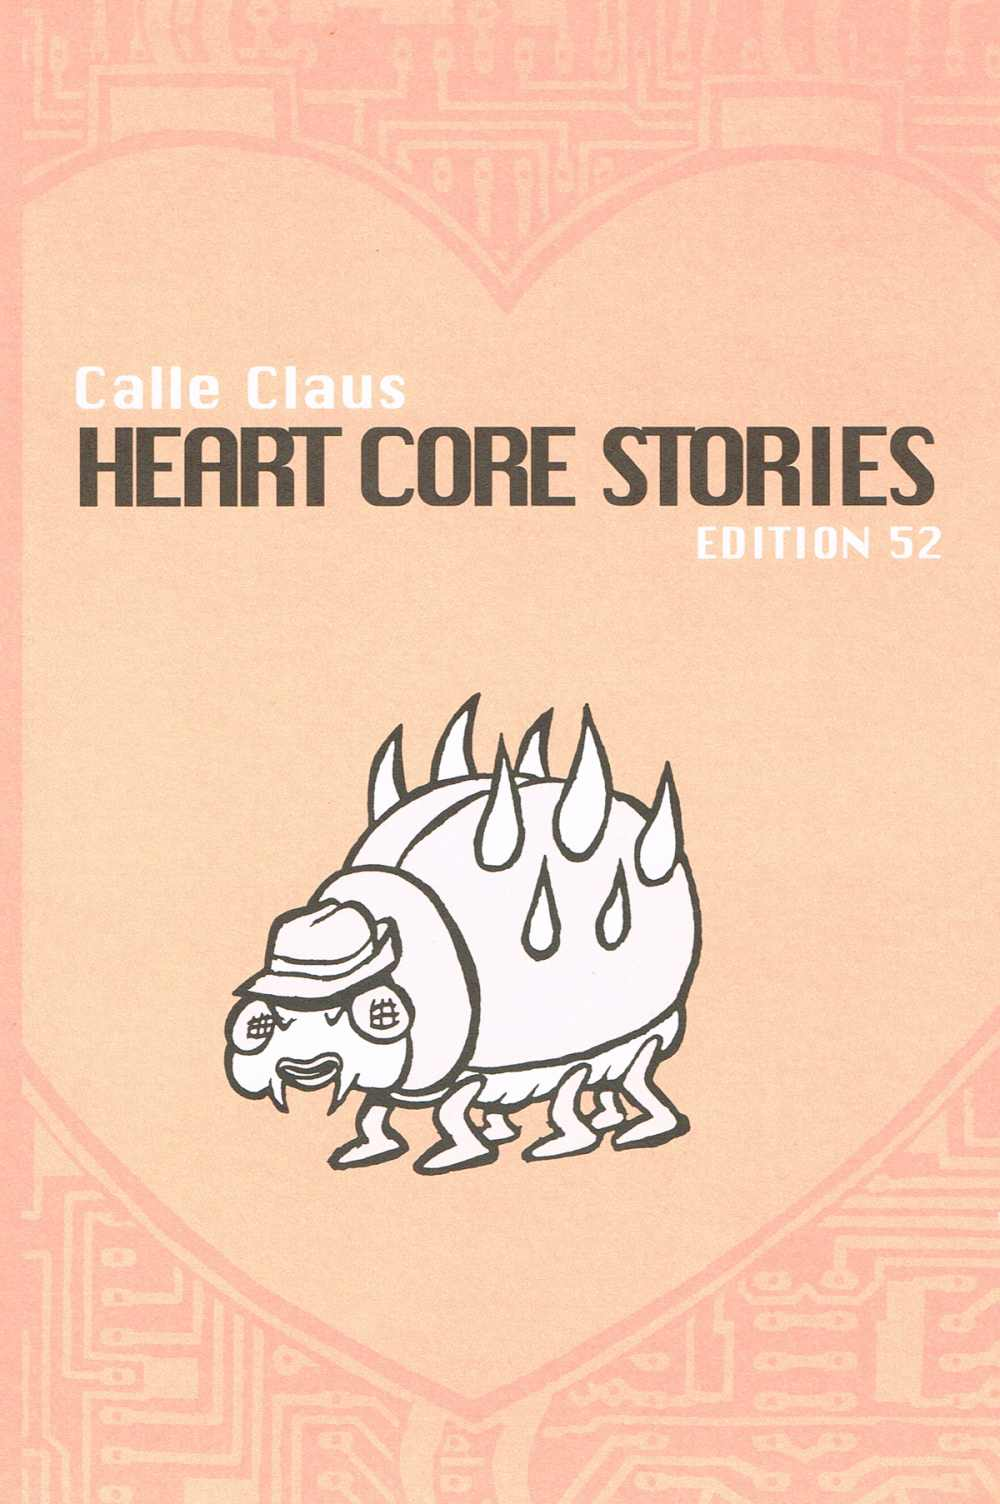 Calle Claus: Heart Core Stories